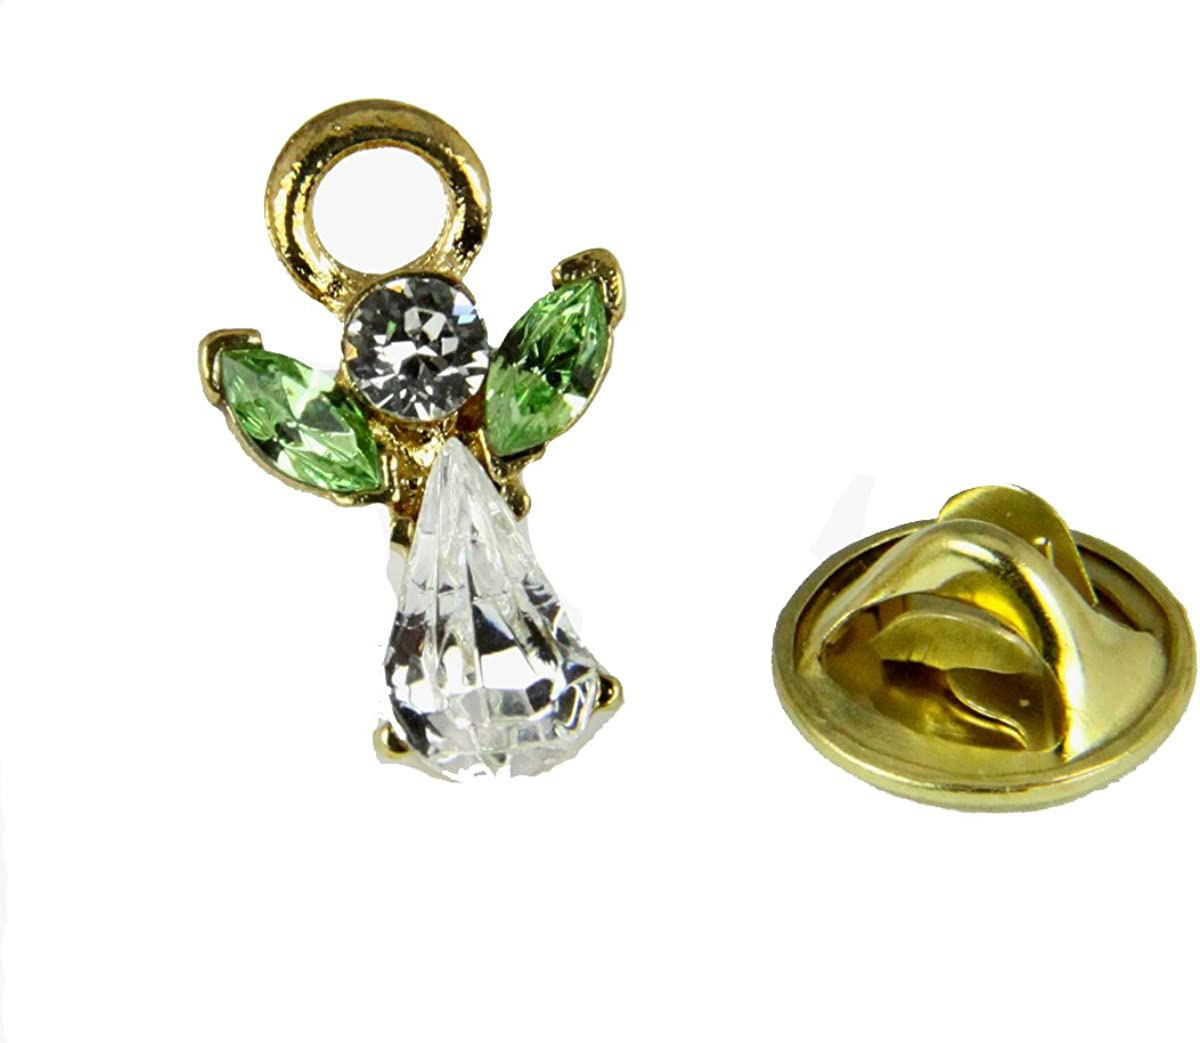 6030604 August Crystal Birth Month Angel Pin Guardian Lapel Brooch Tie Tack